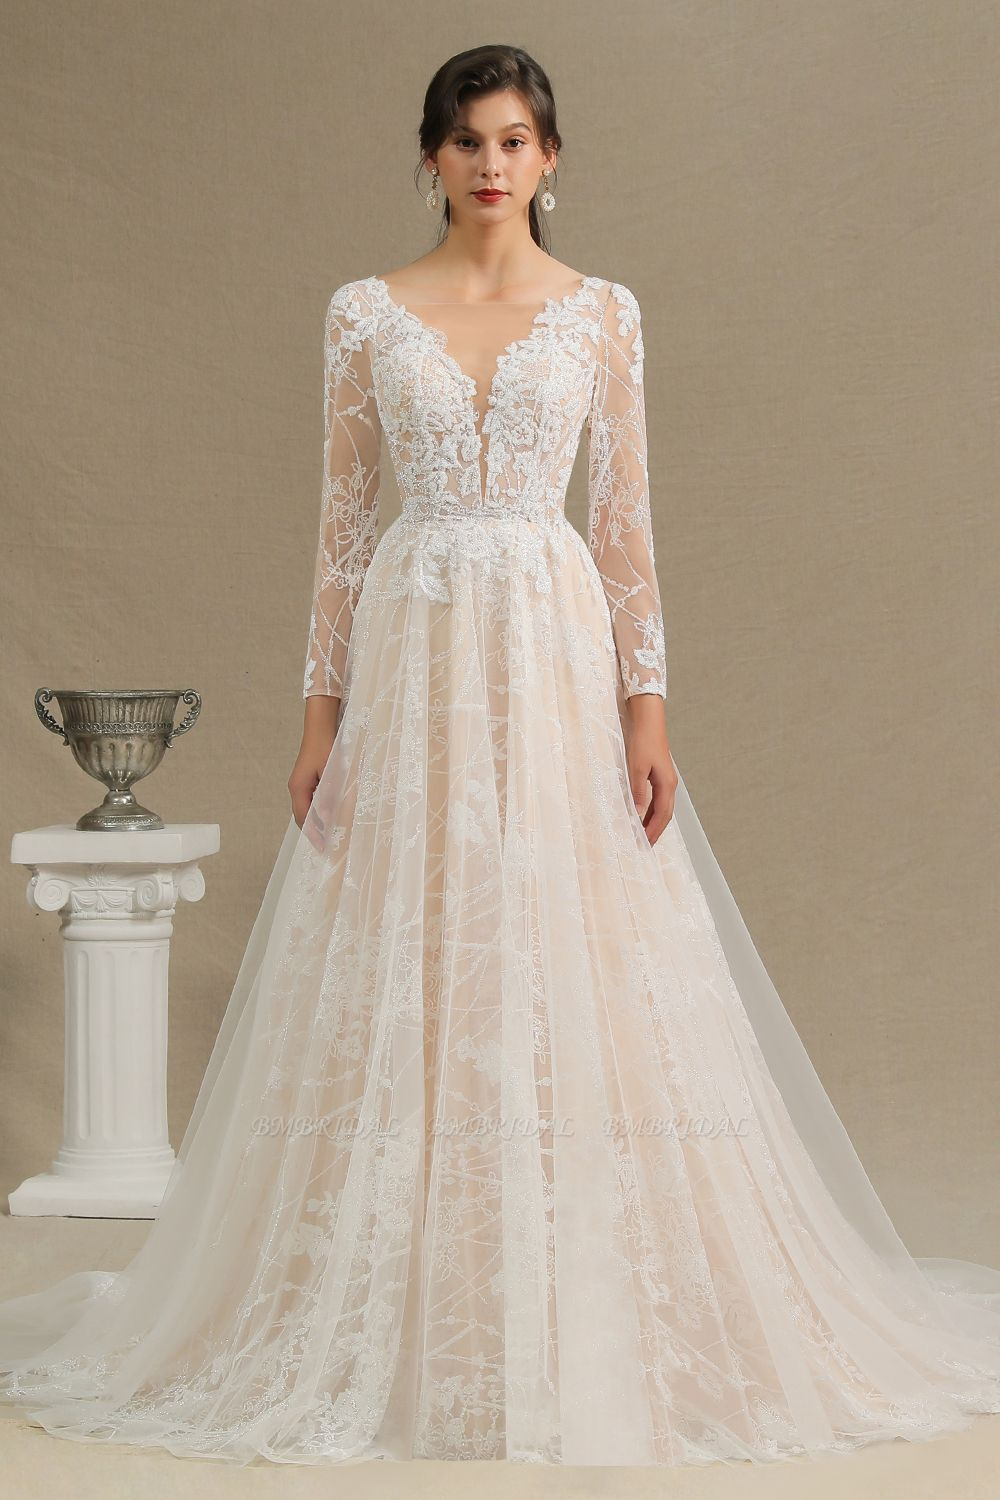 Bmbridal Chic A Line Tulle Lace Wedding Dress Long Sleeves Ivory Bridal Gowns On Sale Long Sleeve Wedding Dress Lace Ivory Bridal Gown Wedding Dresses